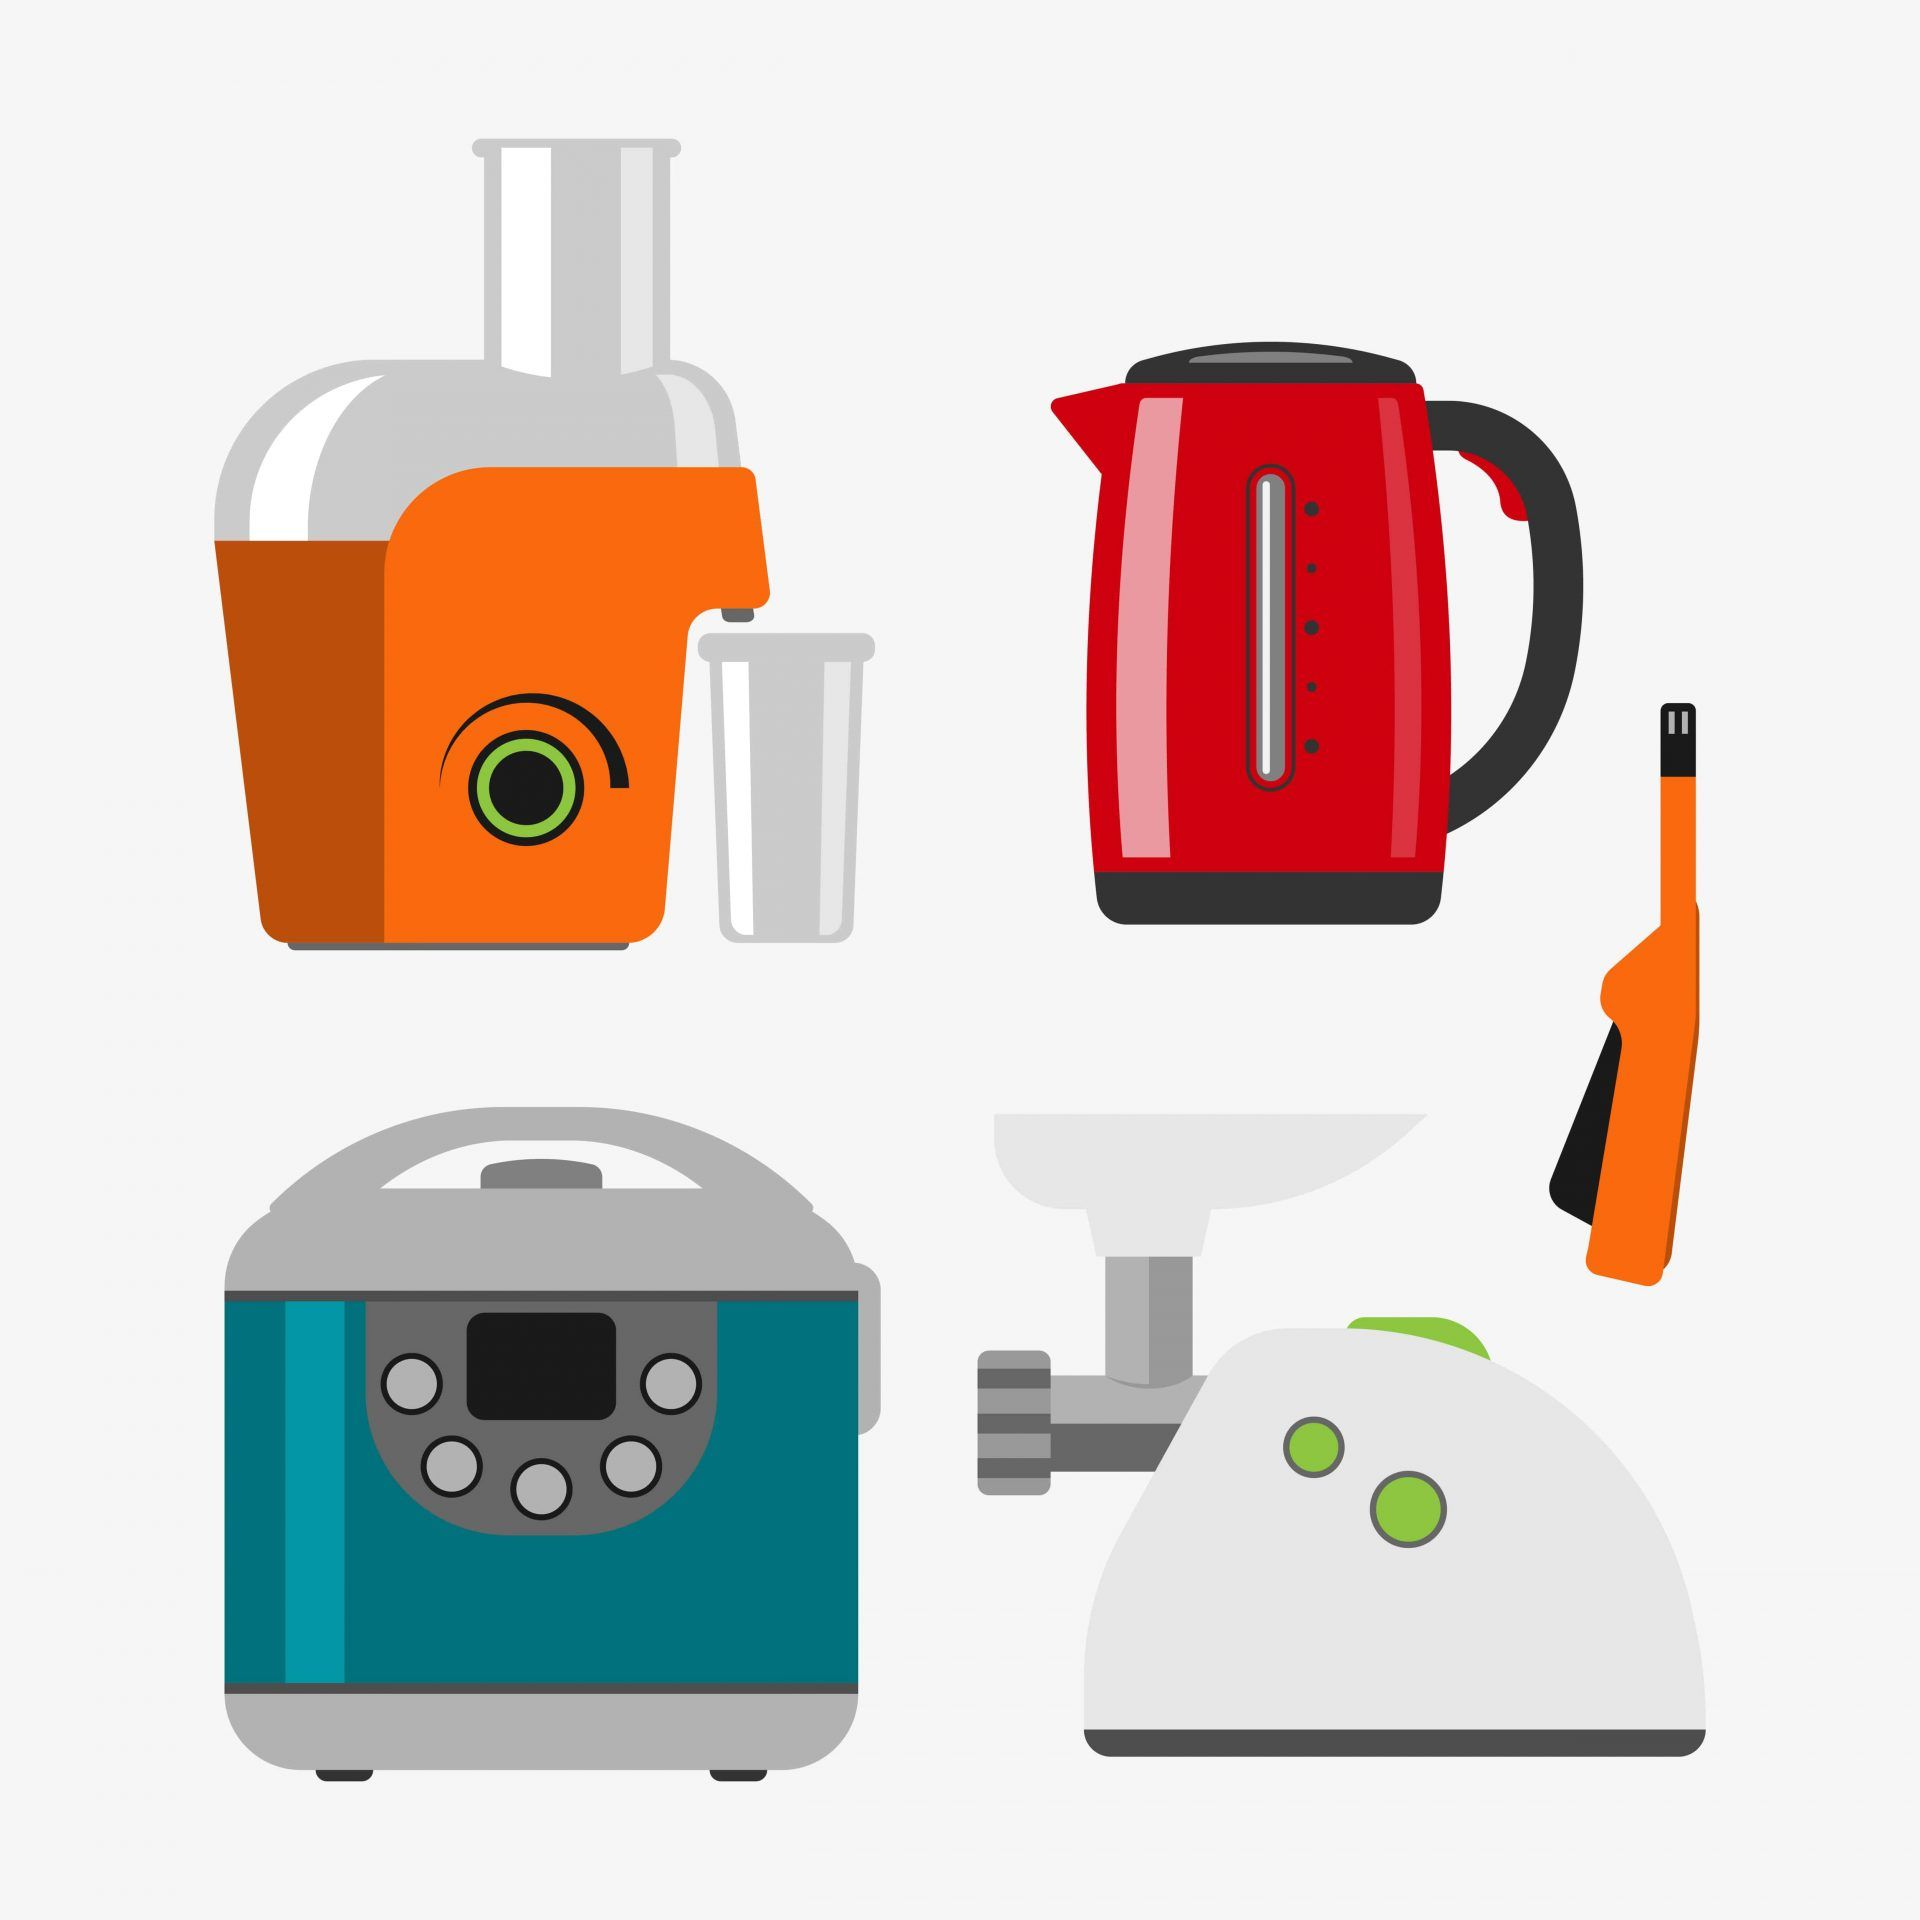 Various Types of Juicers Illustration